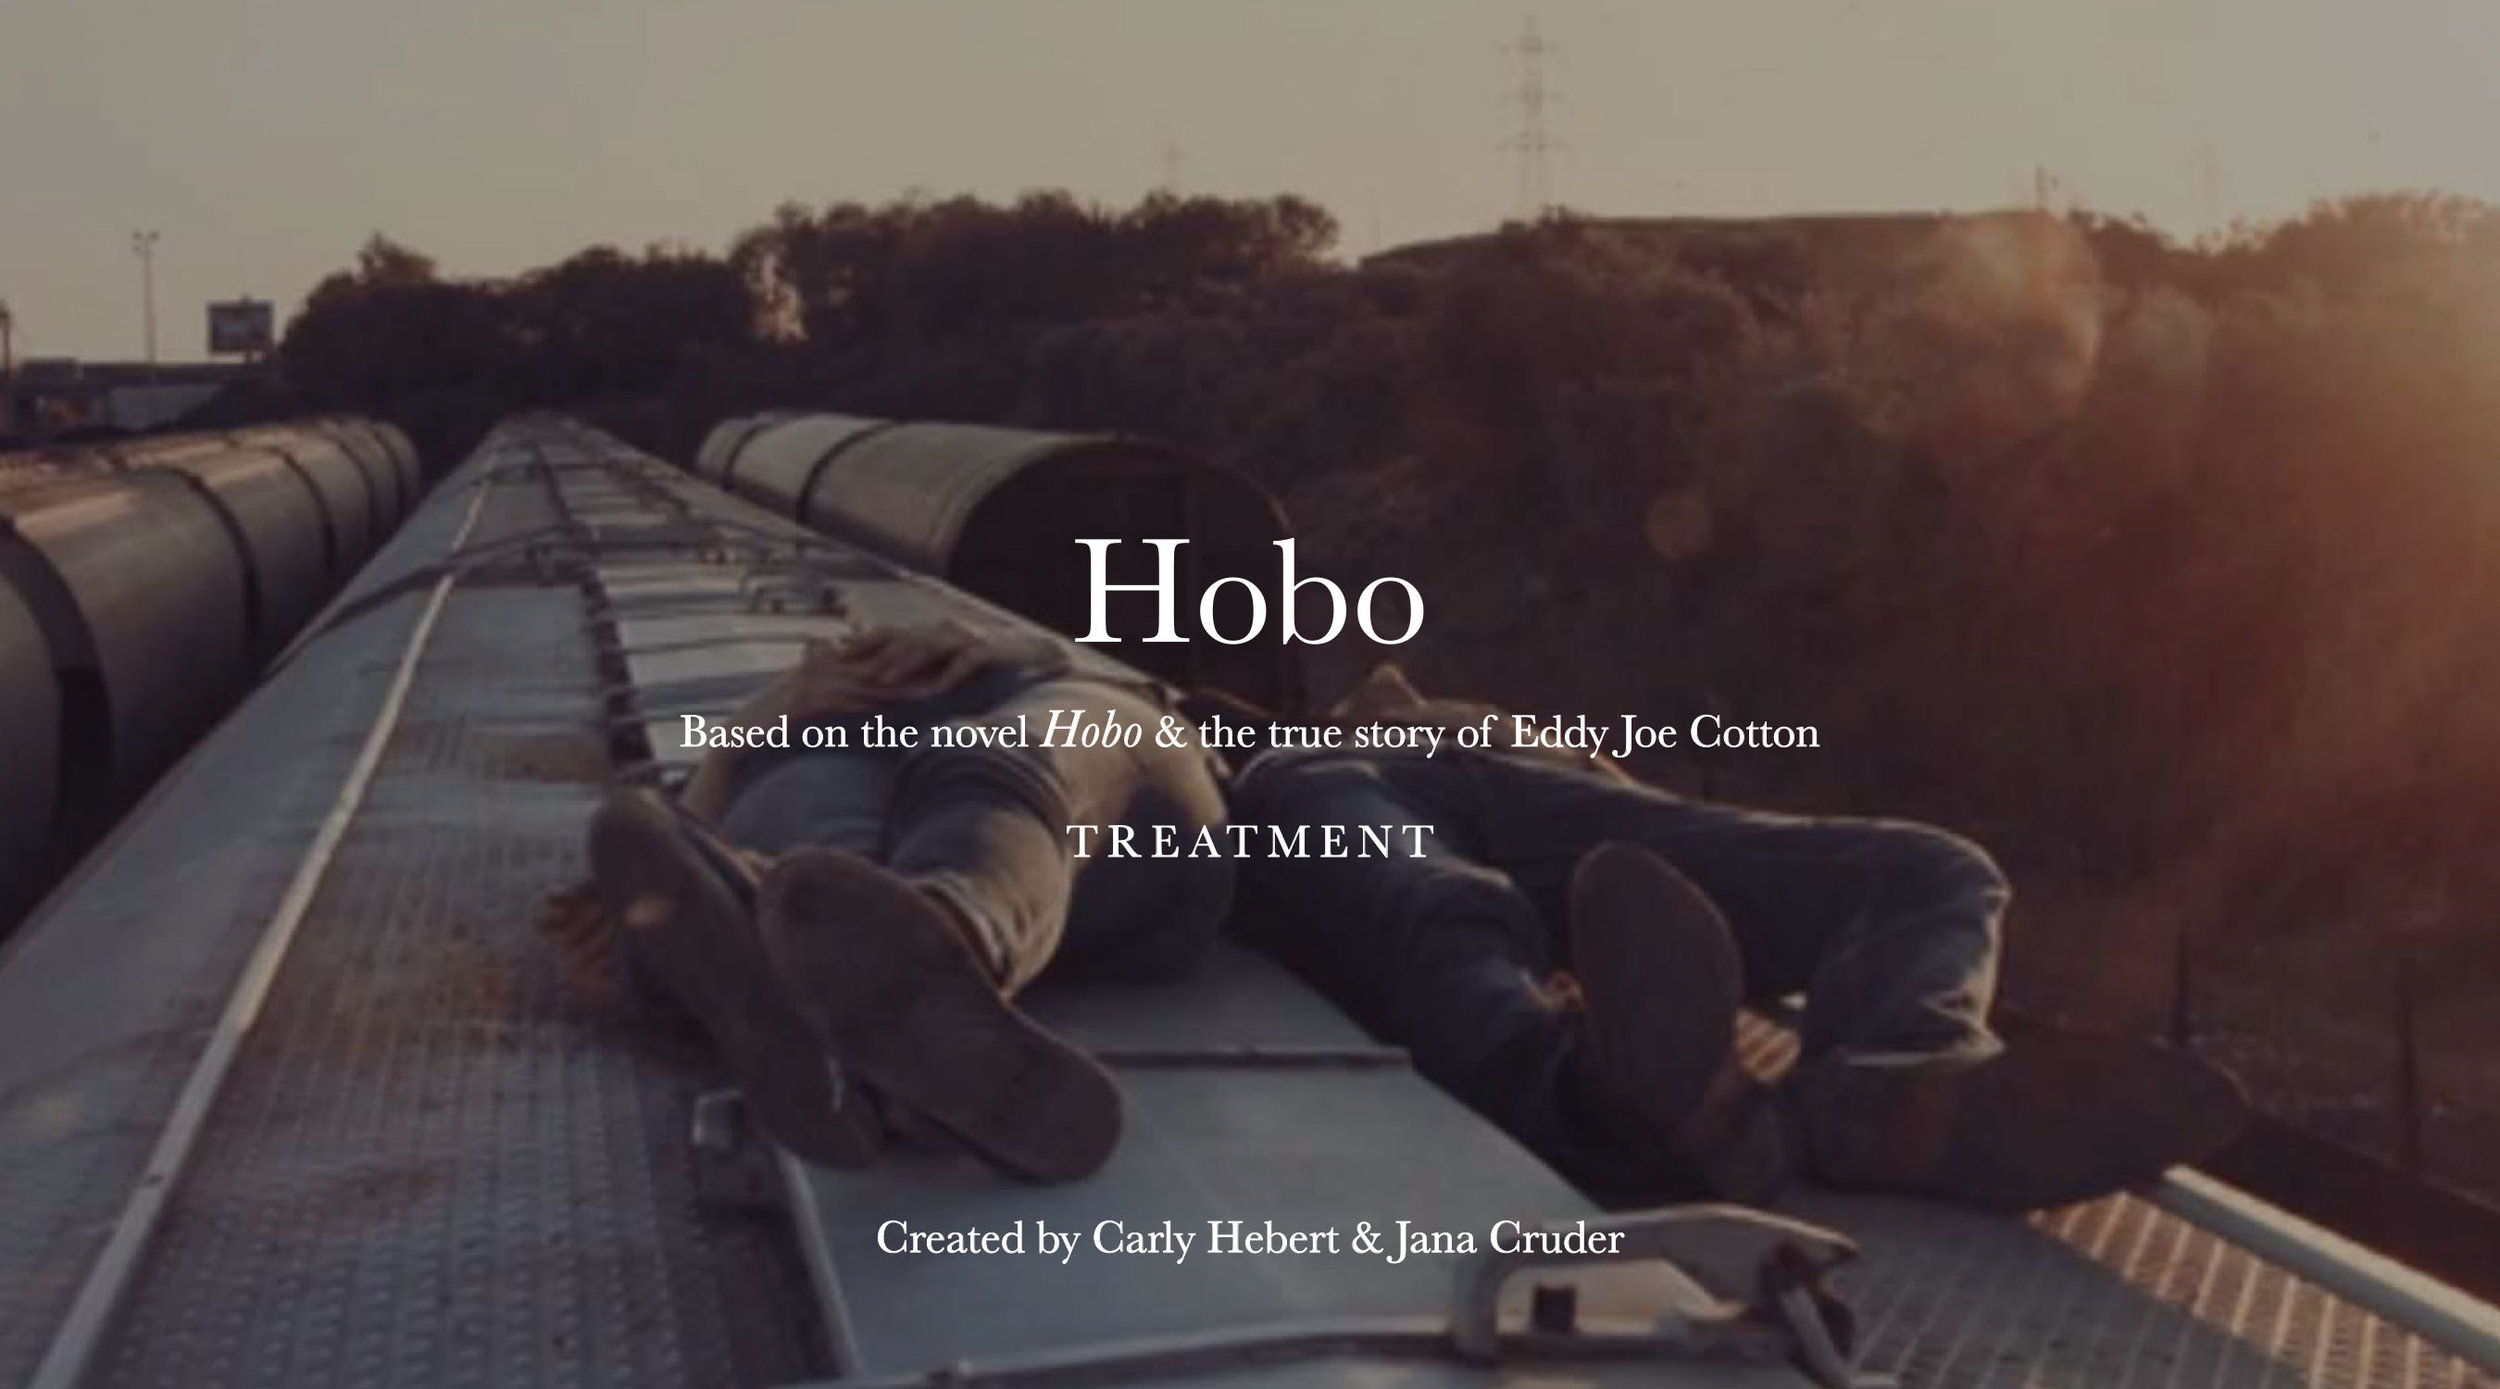 Hobo_treatment 1.jpg